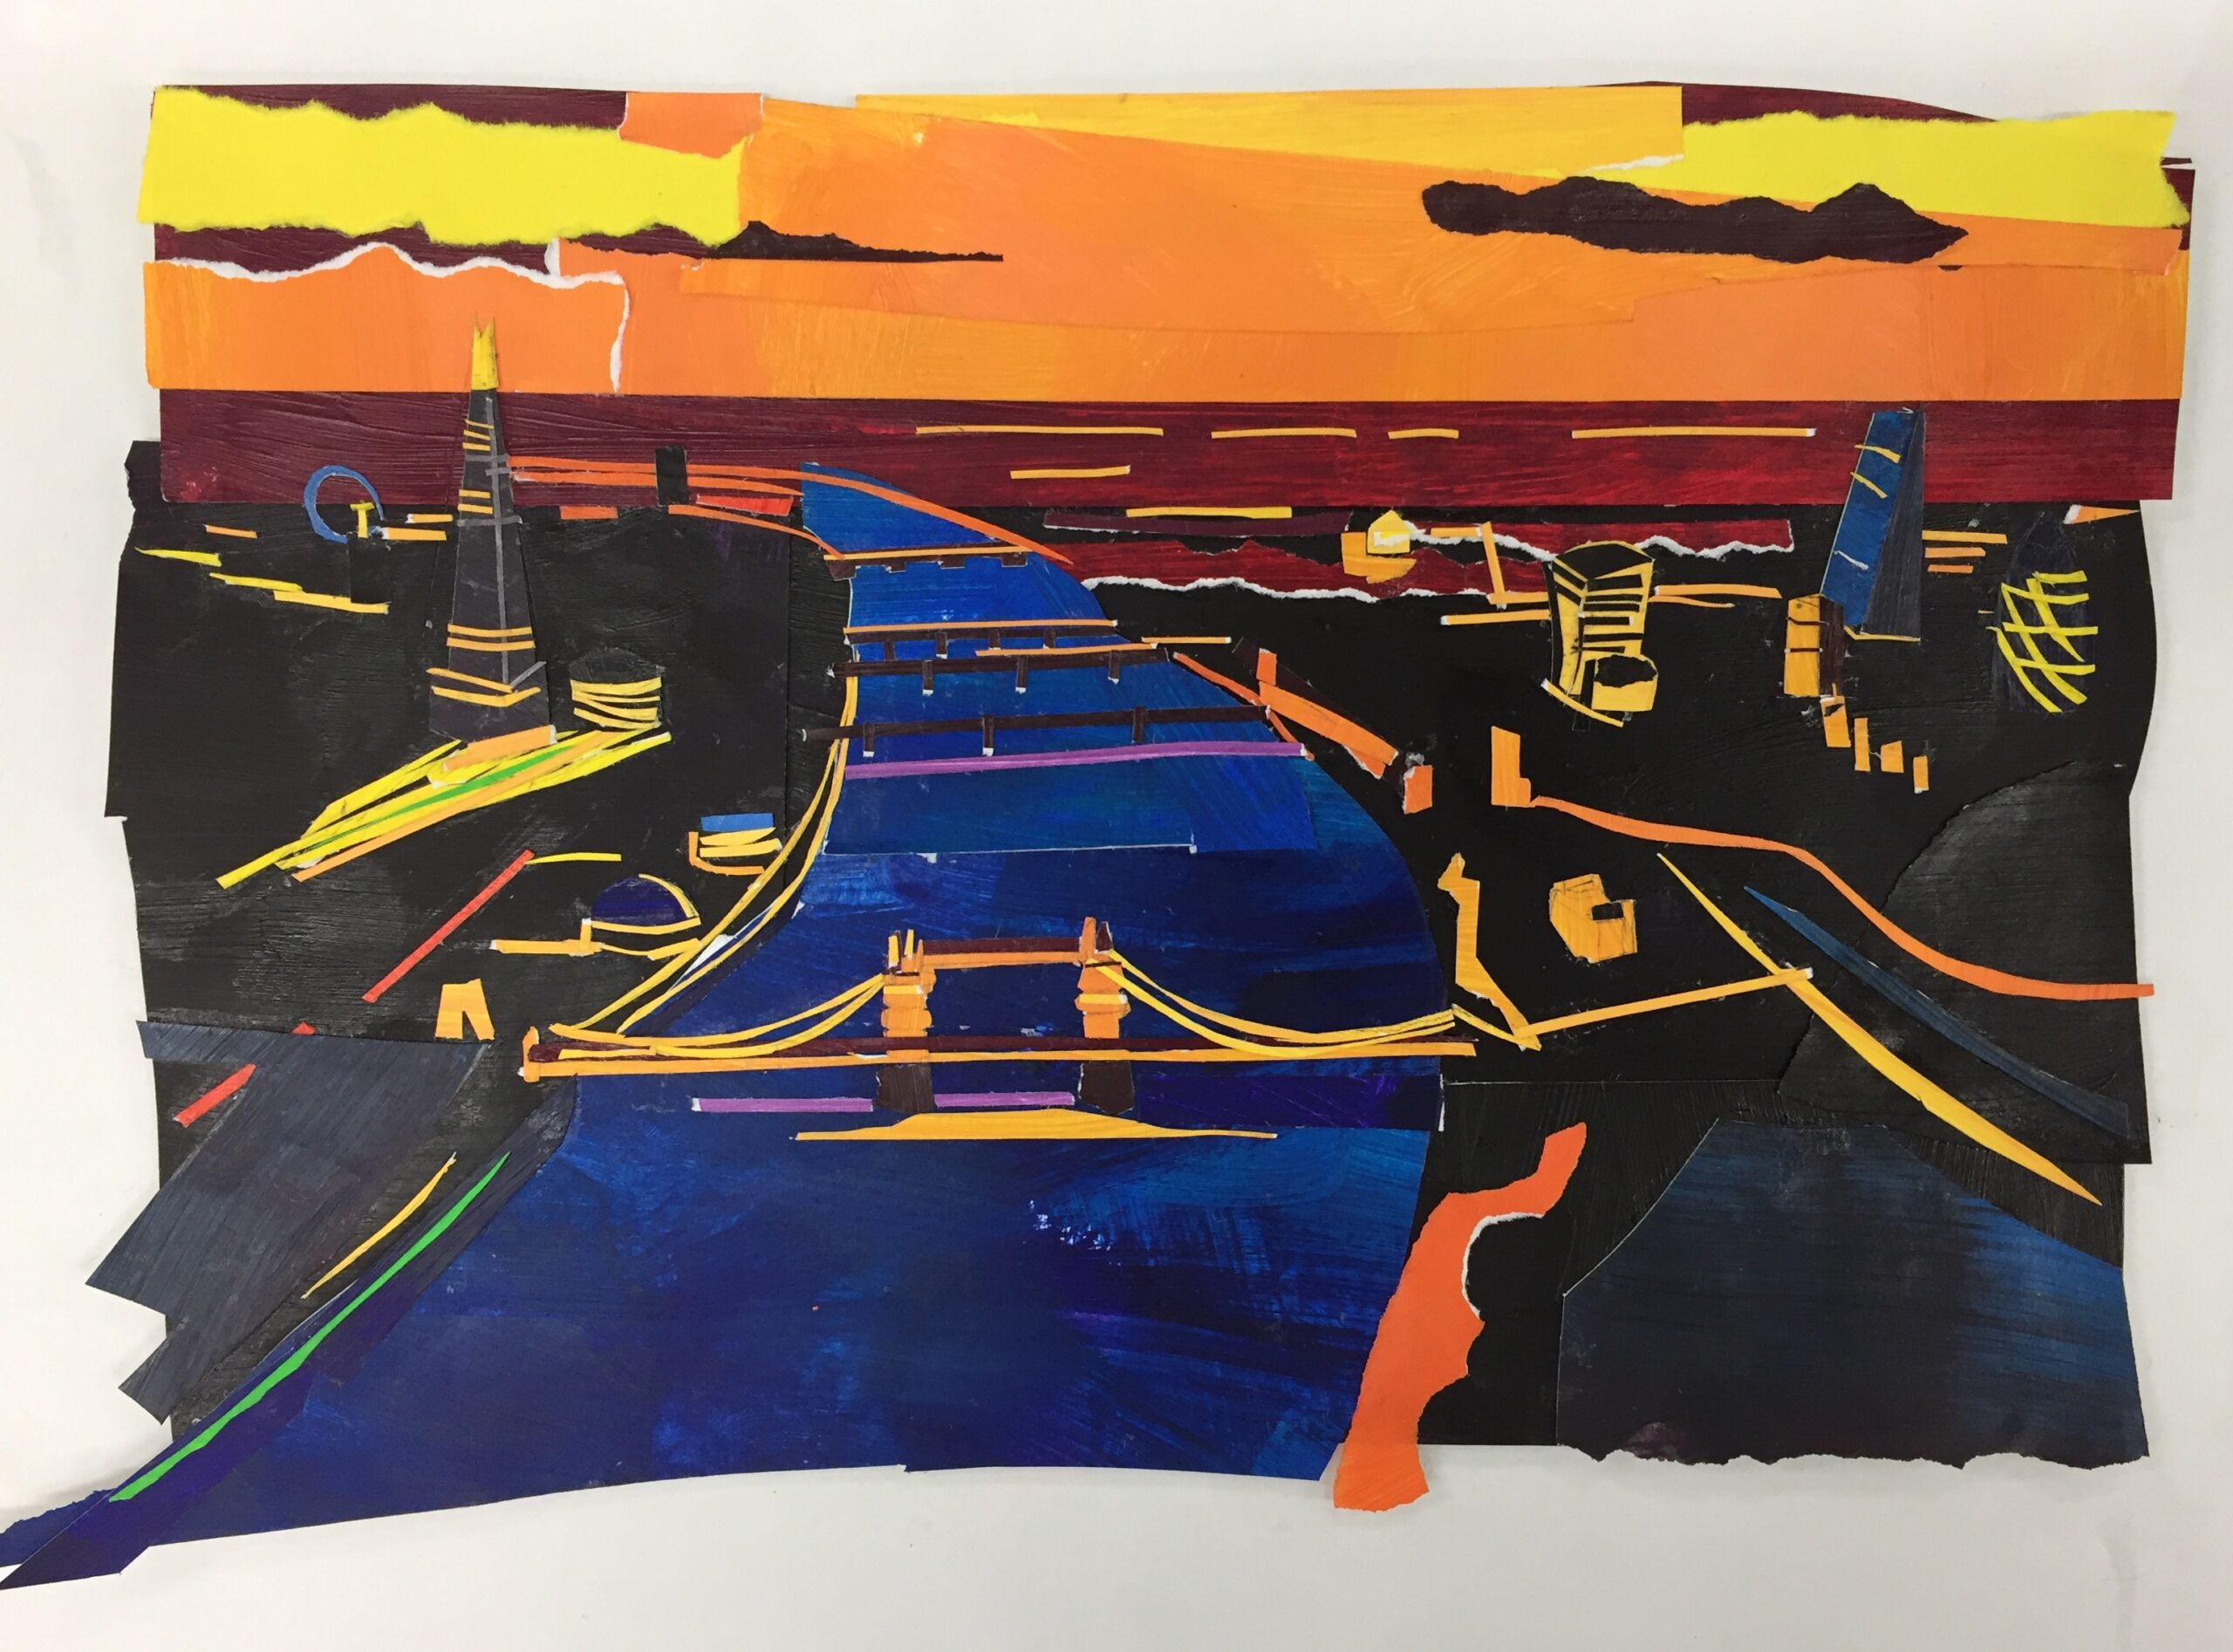 Orange Sky Over London at Night. Raina Goran. Jackson's Painting Prize.